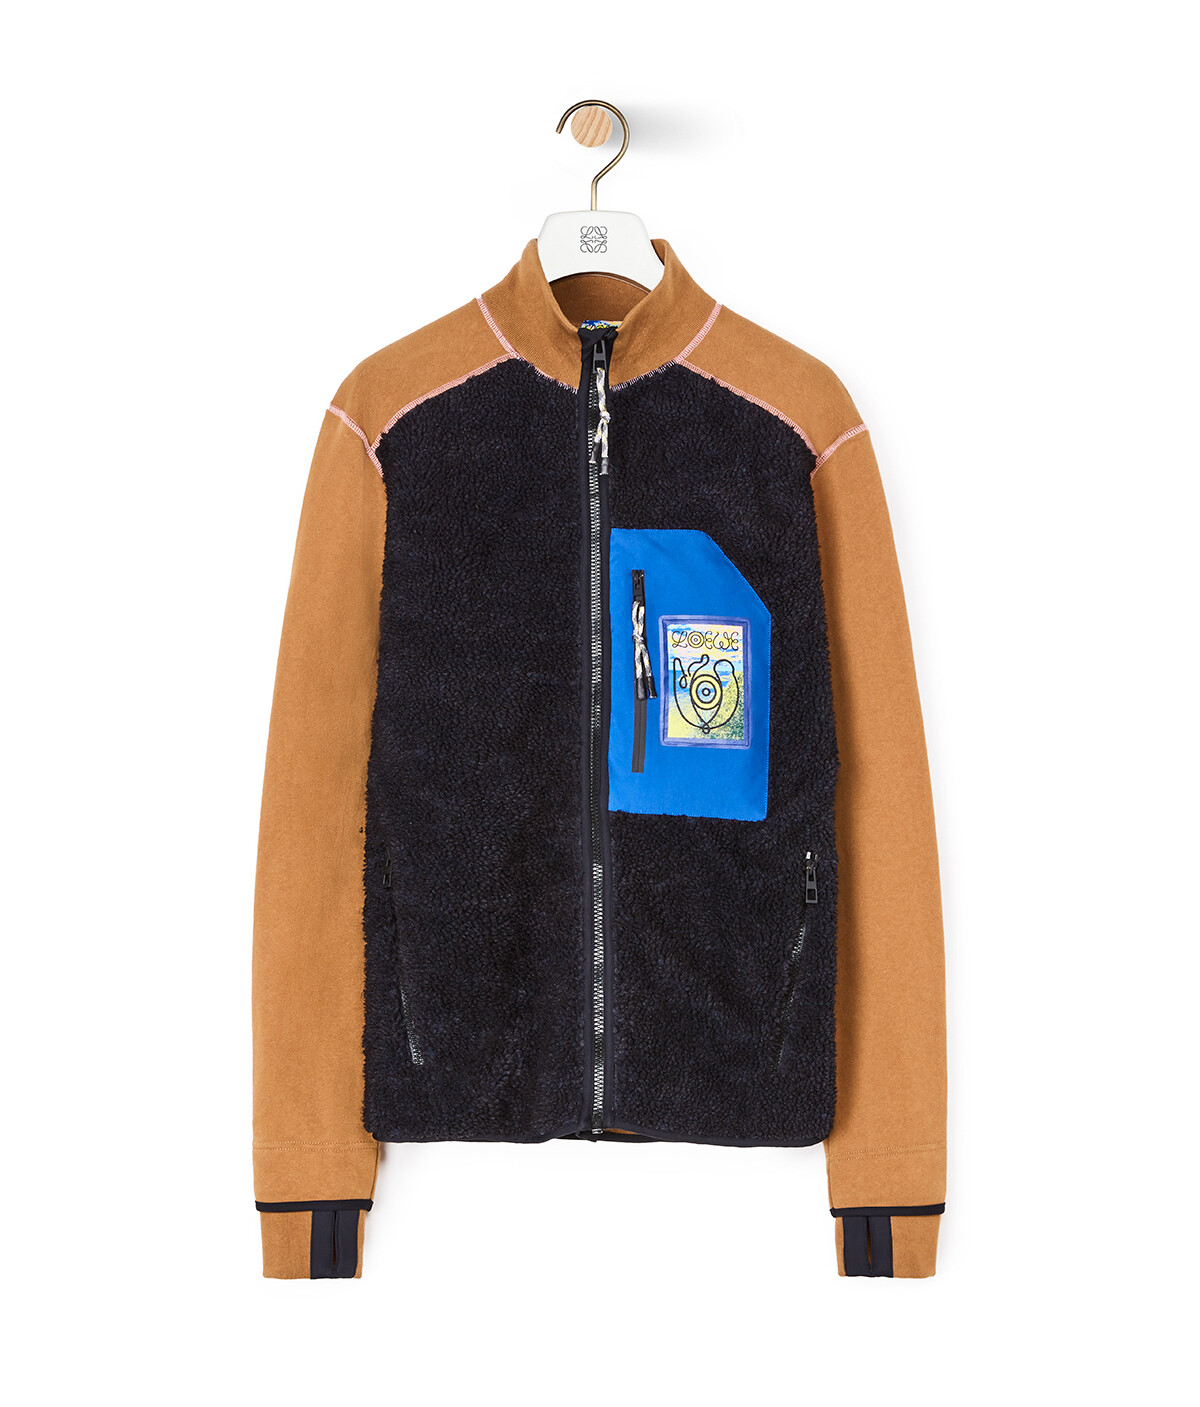 LOEWE Eln High Neck Fleece Jacket Black/Camel front